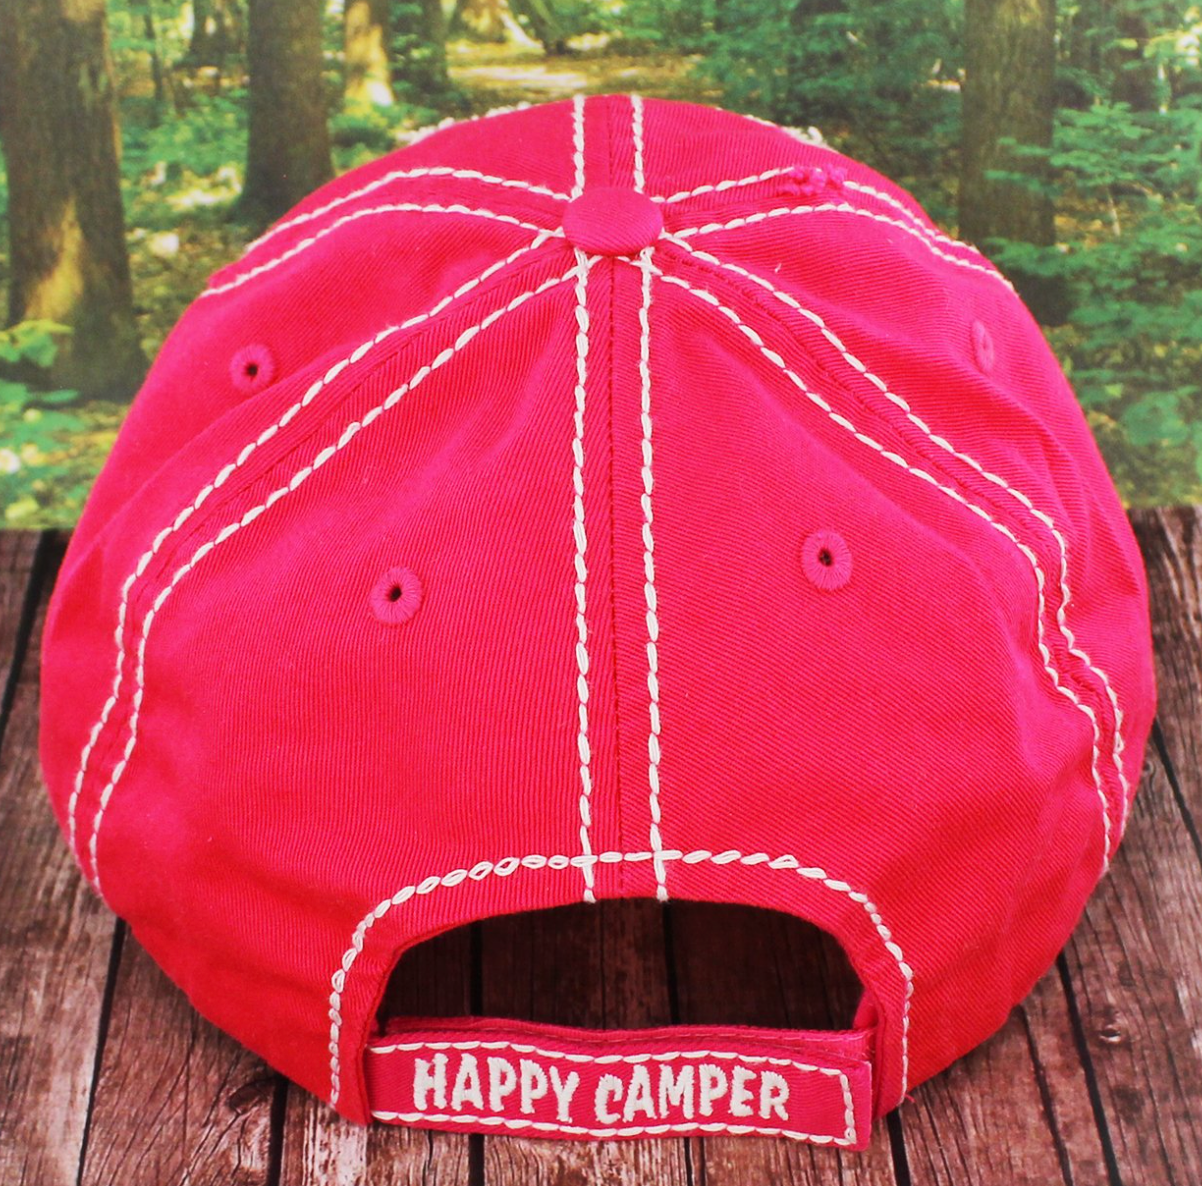 84e78be0d7760 hot pink happy camper cap embroidered patch  happy camper hot pink hat back